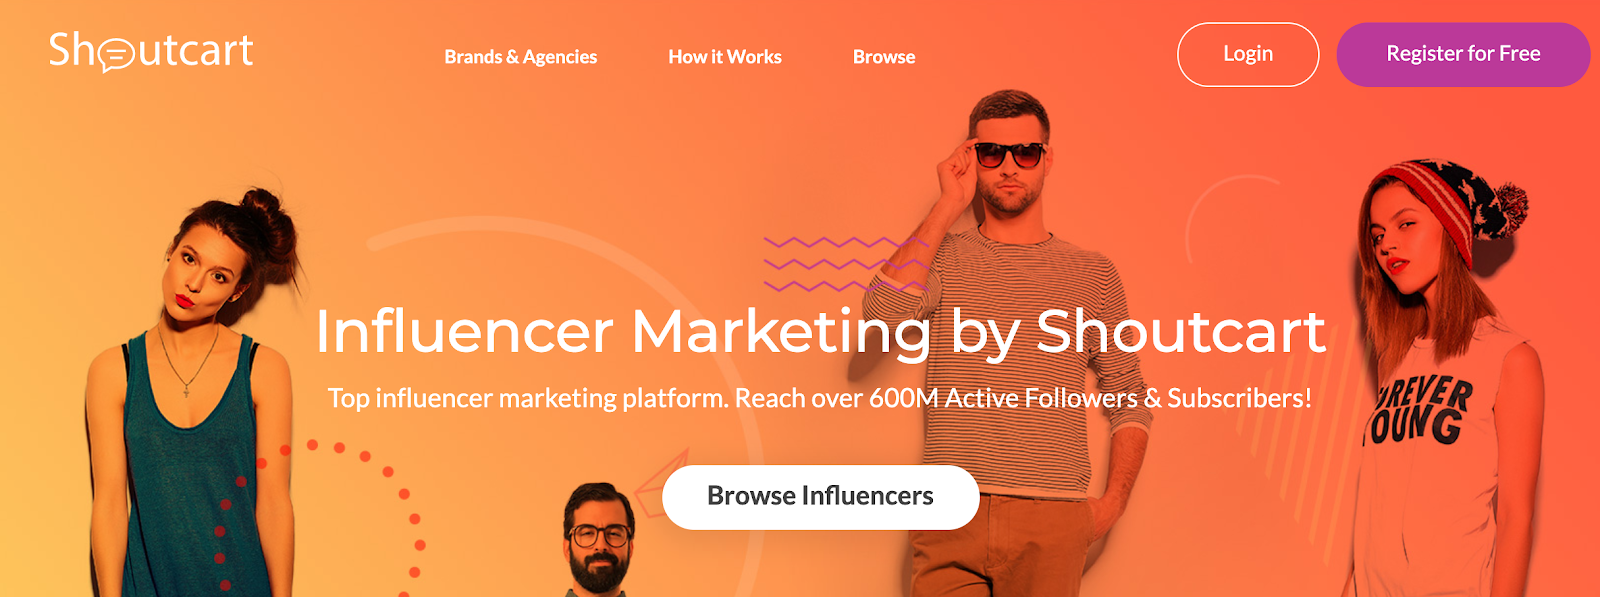 Shoutcart - Top Influencer Marketing Platform